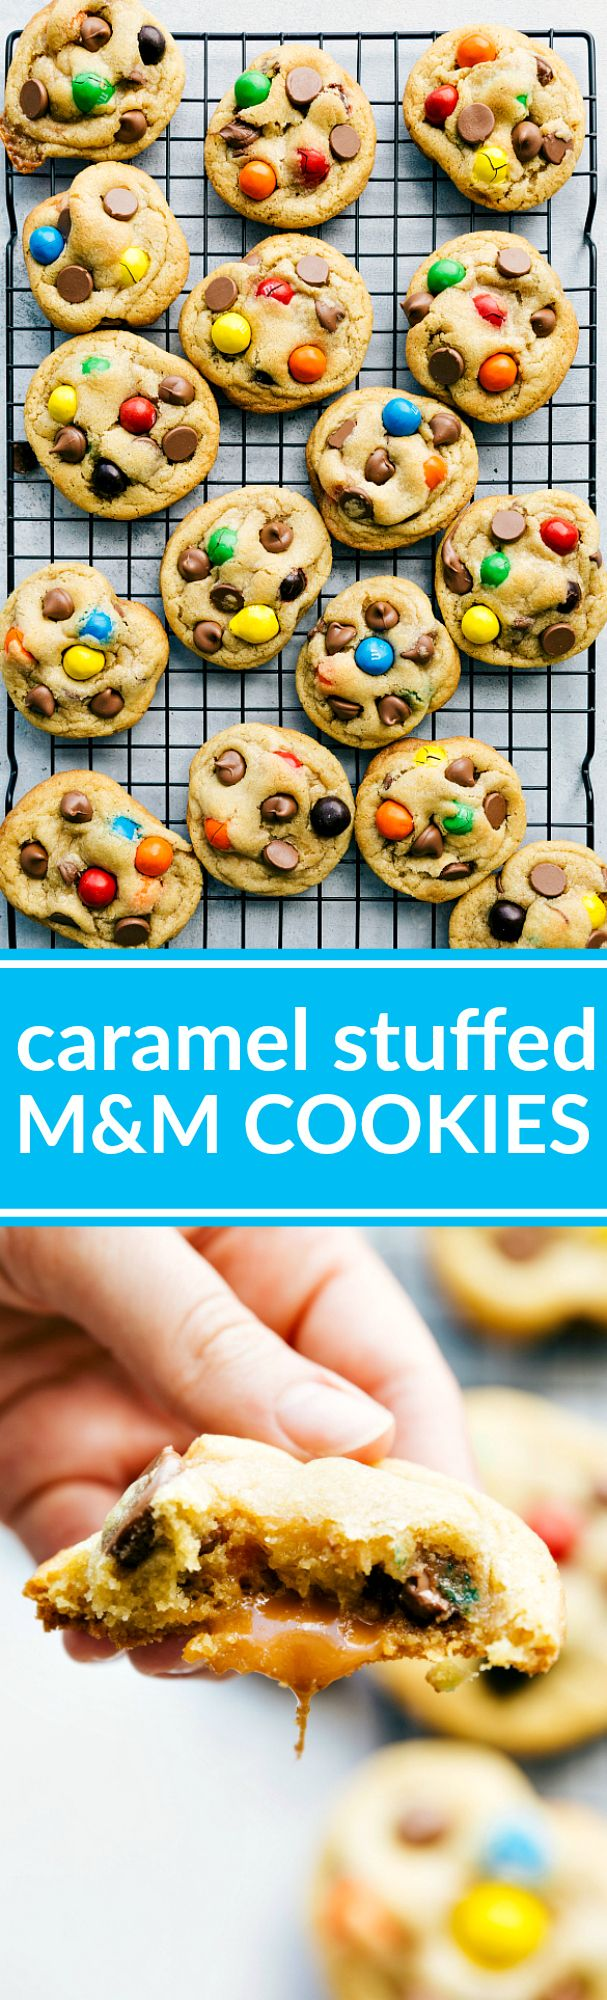 Loaded caramel stuffed cookies with big chocolate chips, gooey caramel center, and big M&Ms. Recipe from Chelsea's Messy Apron.